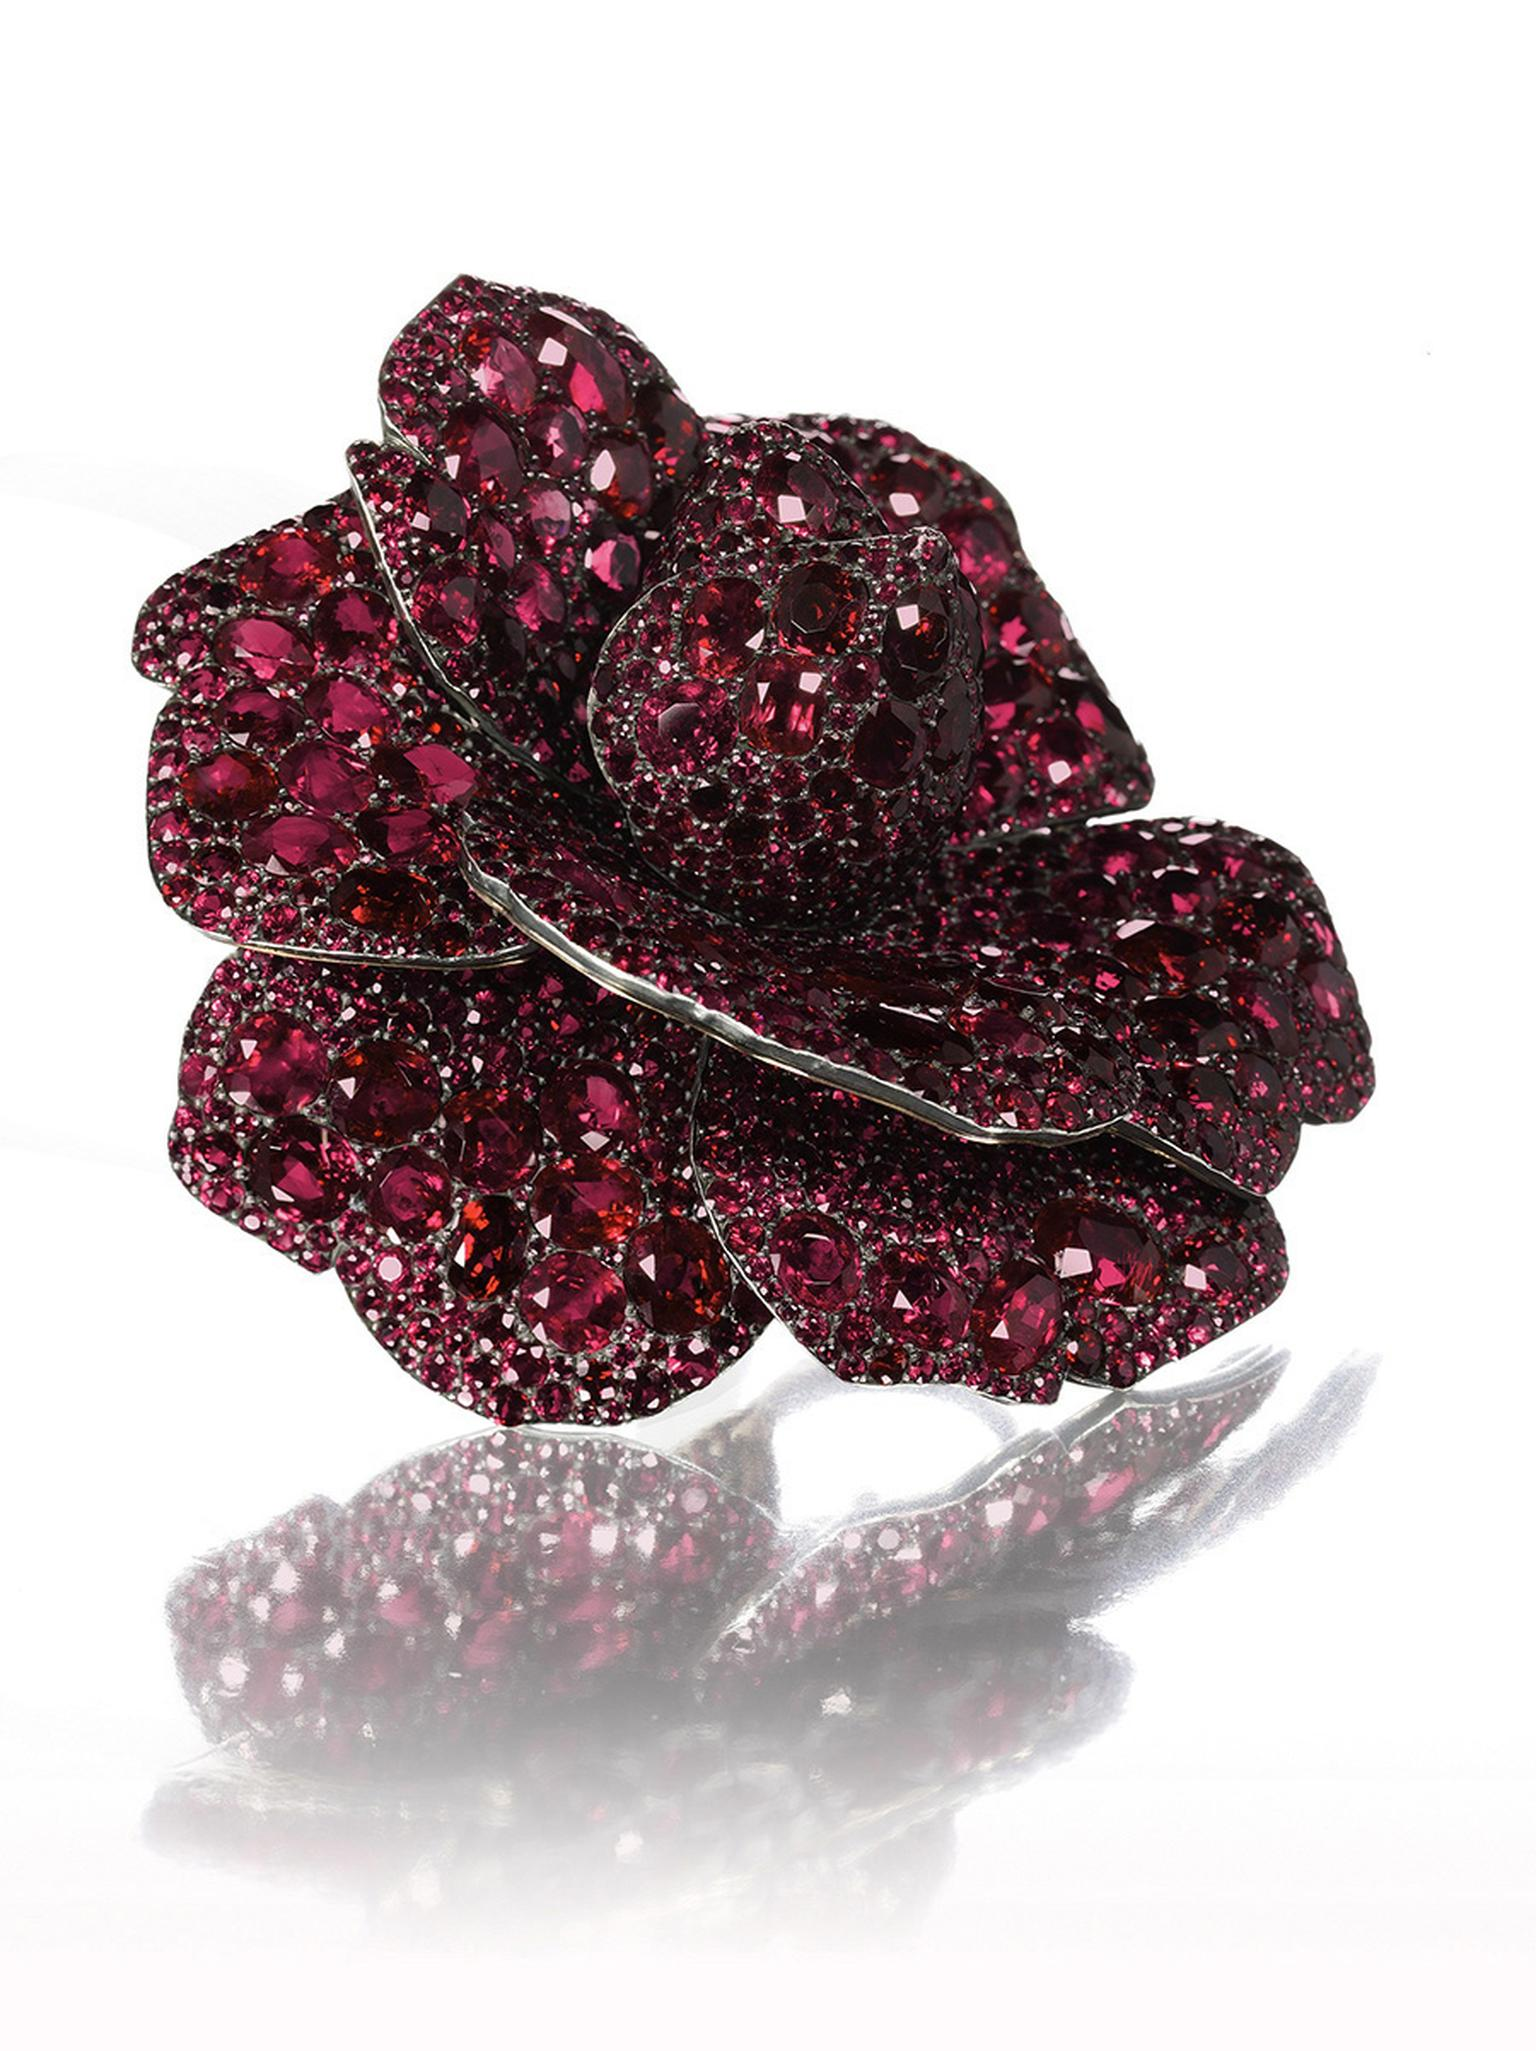 Ruby and diamond brooch by JAR 2003